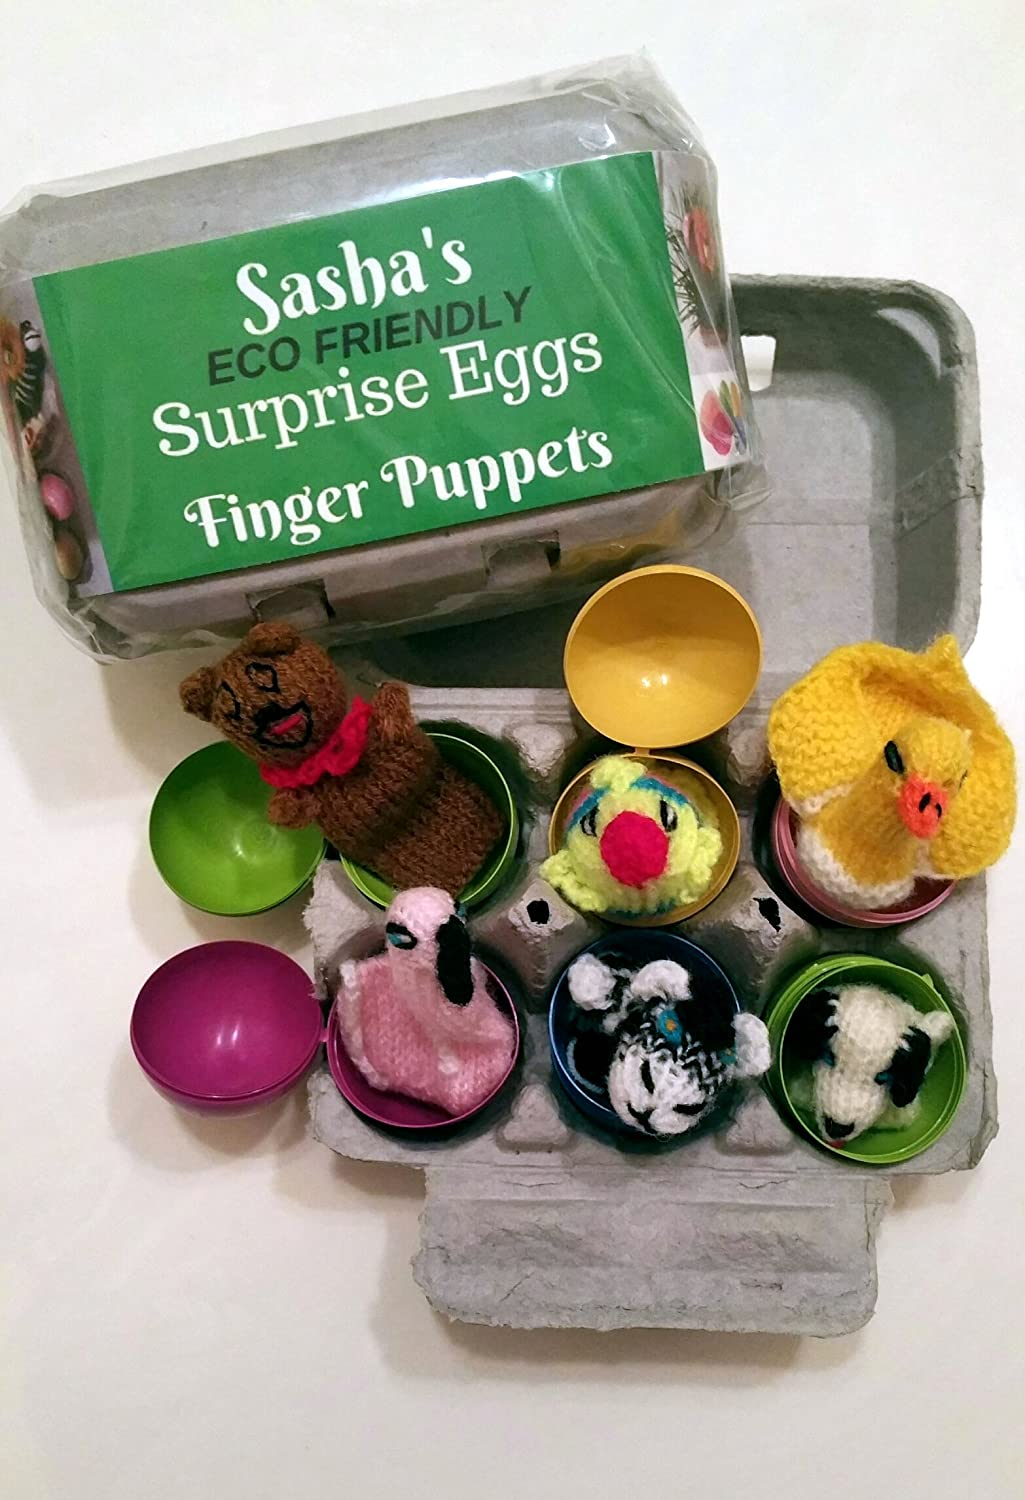 Sasha's 6 ECO Friendly Surprise Eggs with Knit Finger Puppet Animals Hiding Inside. Great for Party Favors, Birthday Gifts, Egg Hunts, Teaching Tools, Pre-school kids 3+ by Sasha Surprise Eggs